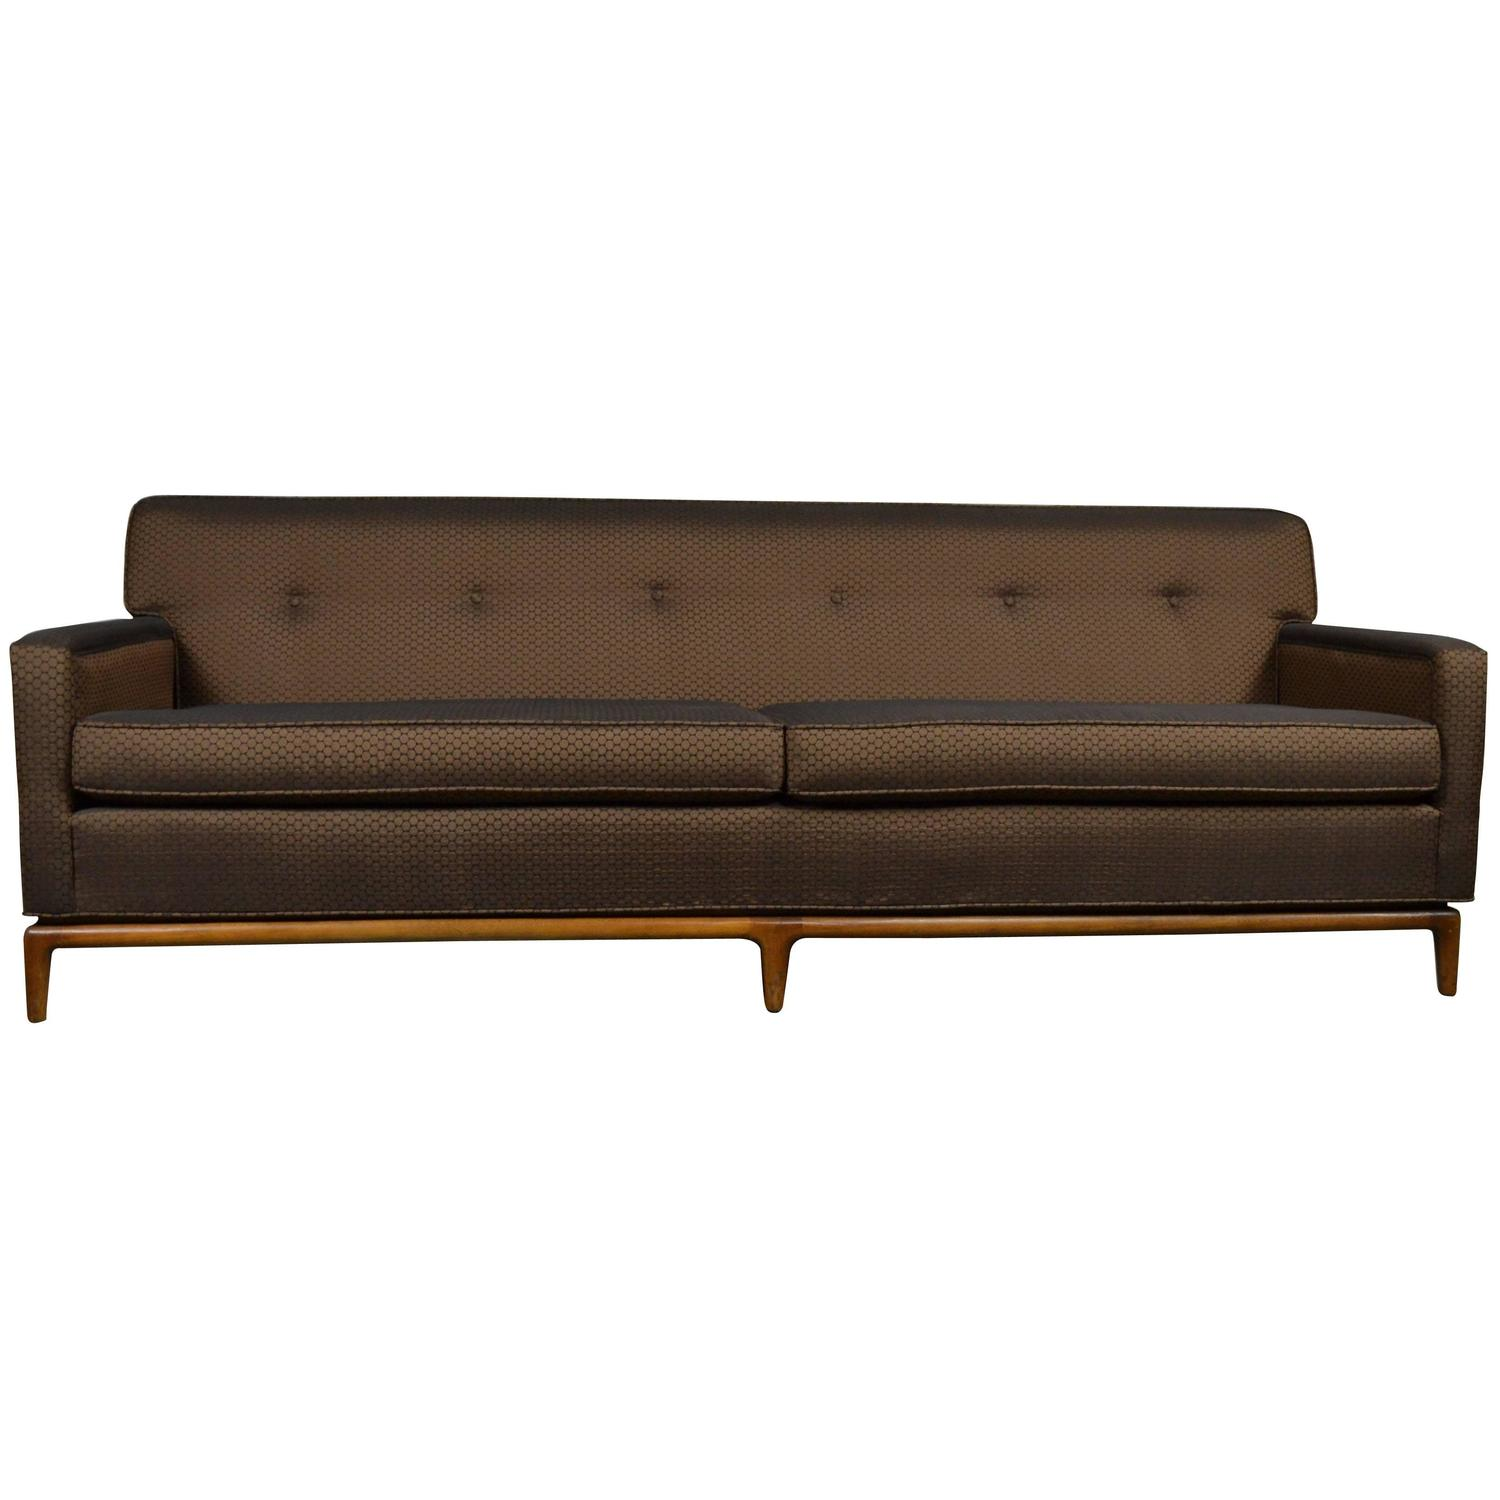 Pink Blush Velvet Mid Century Modern Sofa with Tufted Back at 1stdibs